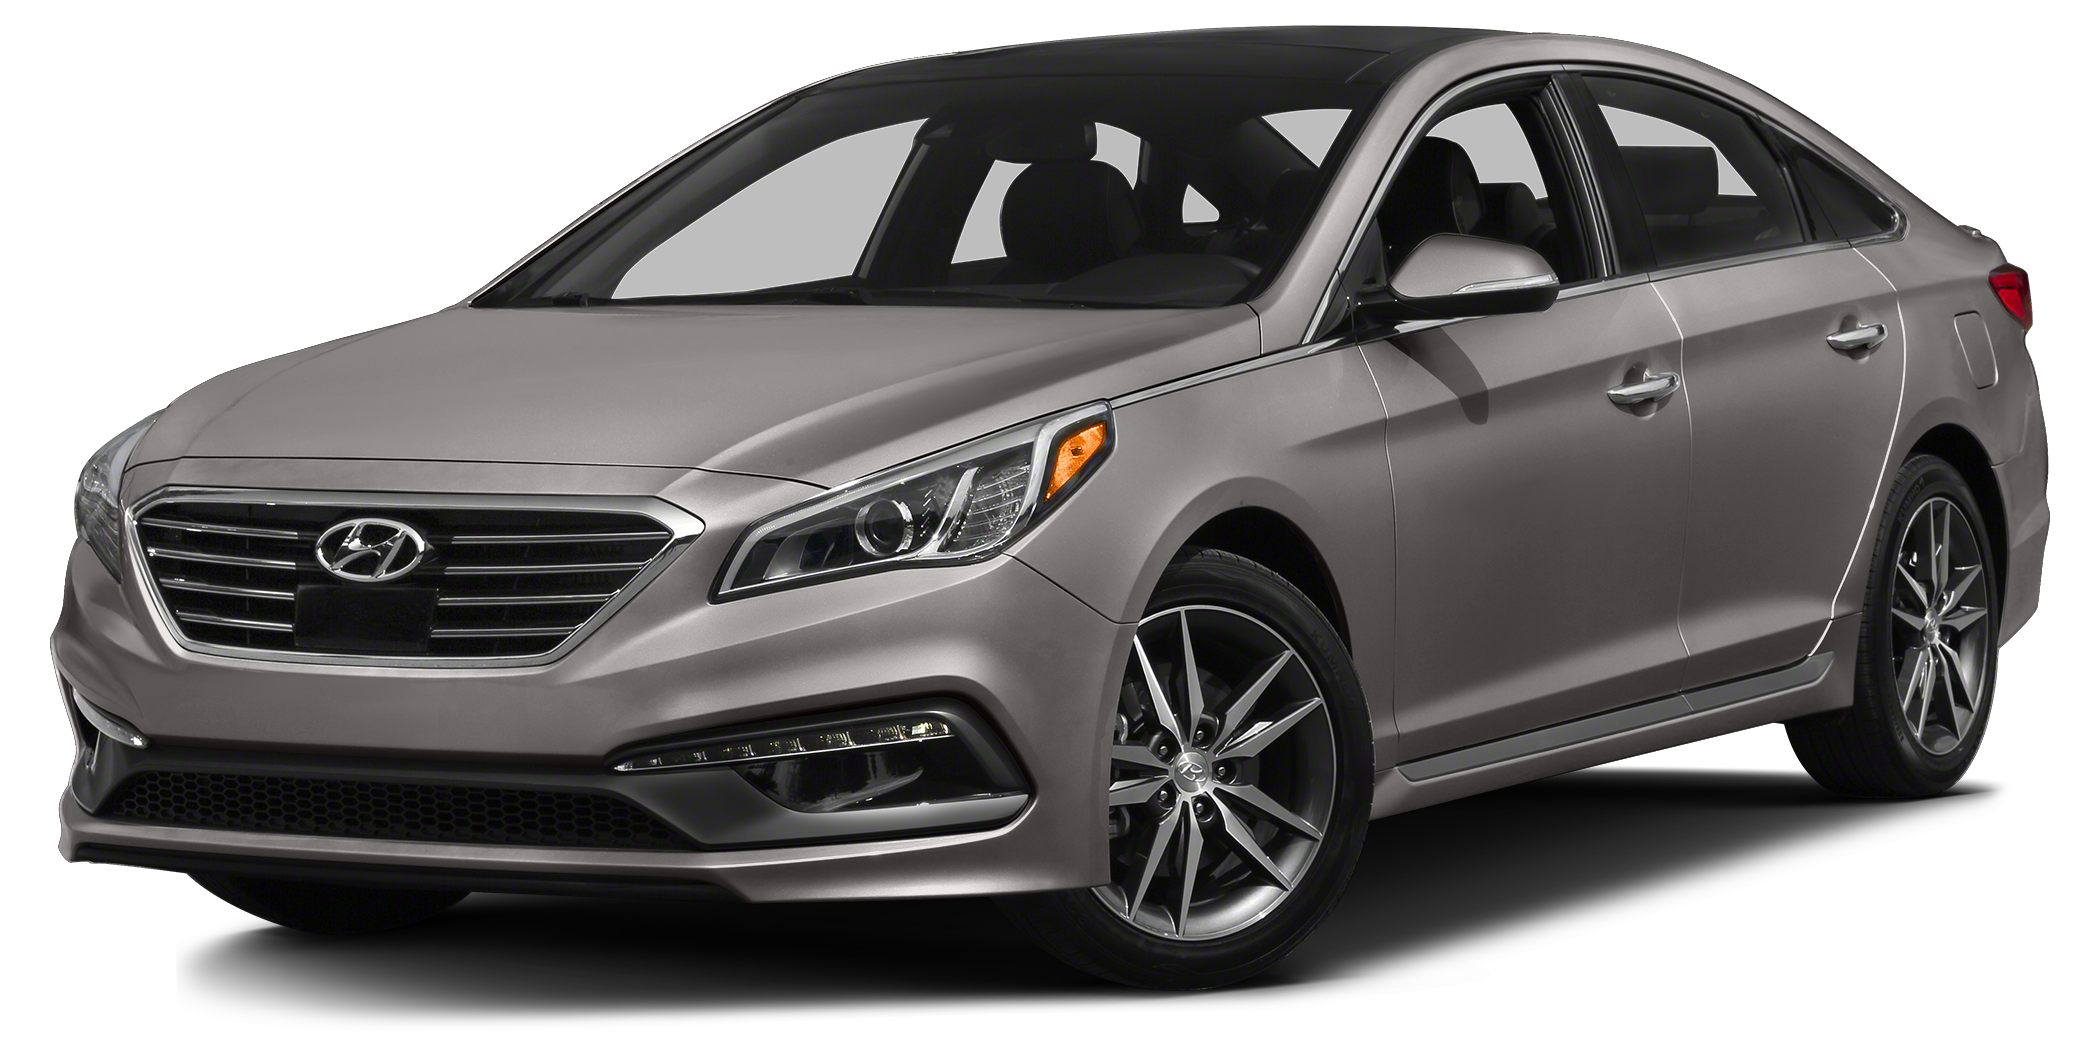 2015 Hyundai Sonata SE Price includes 1500 - Retail Bonus Cash Exp 0430 Miles 11Color Qua